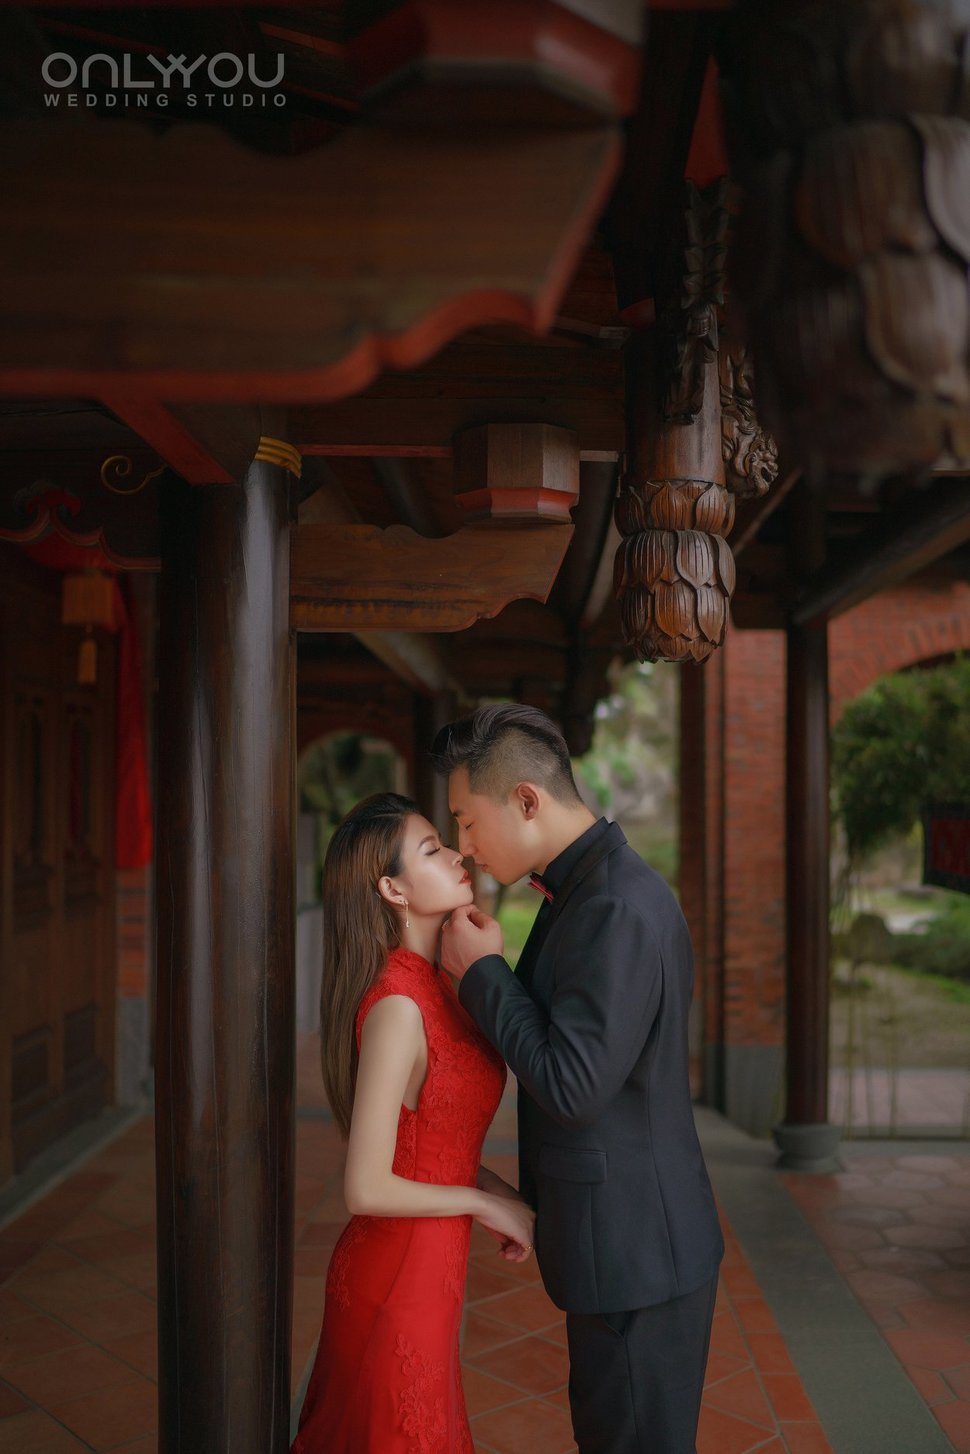 66731787_2258081820914118_6567641857629618176_o - ONLY YOU 唯你婚紗攝影《結婚吧》